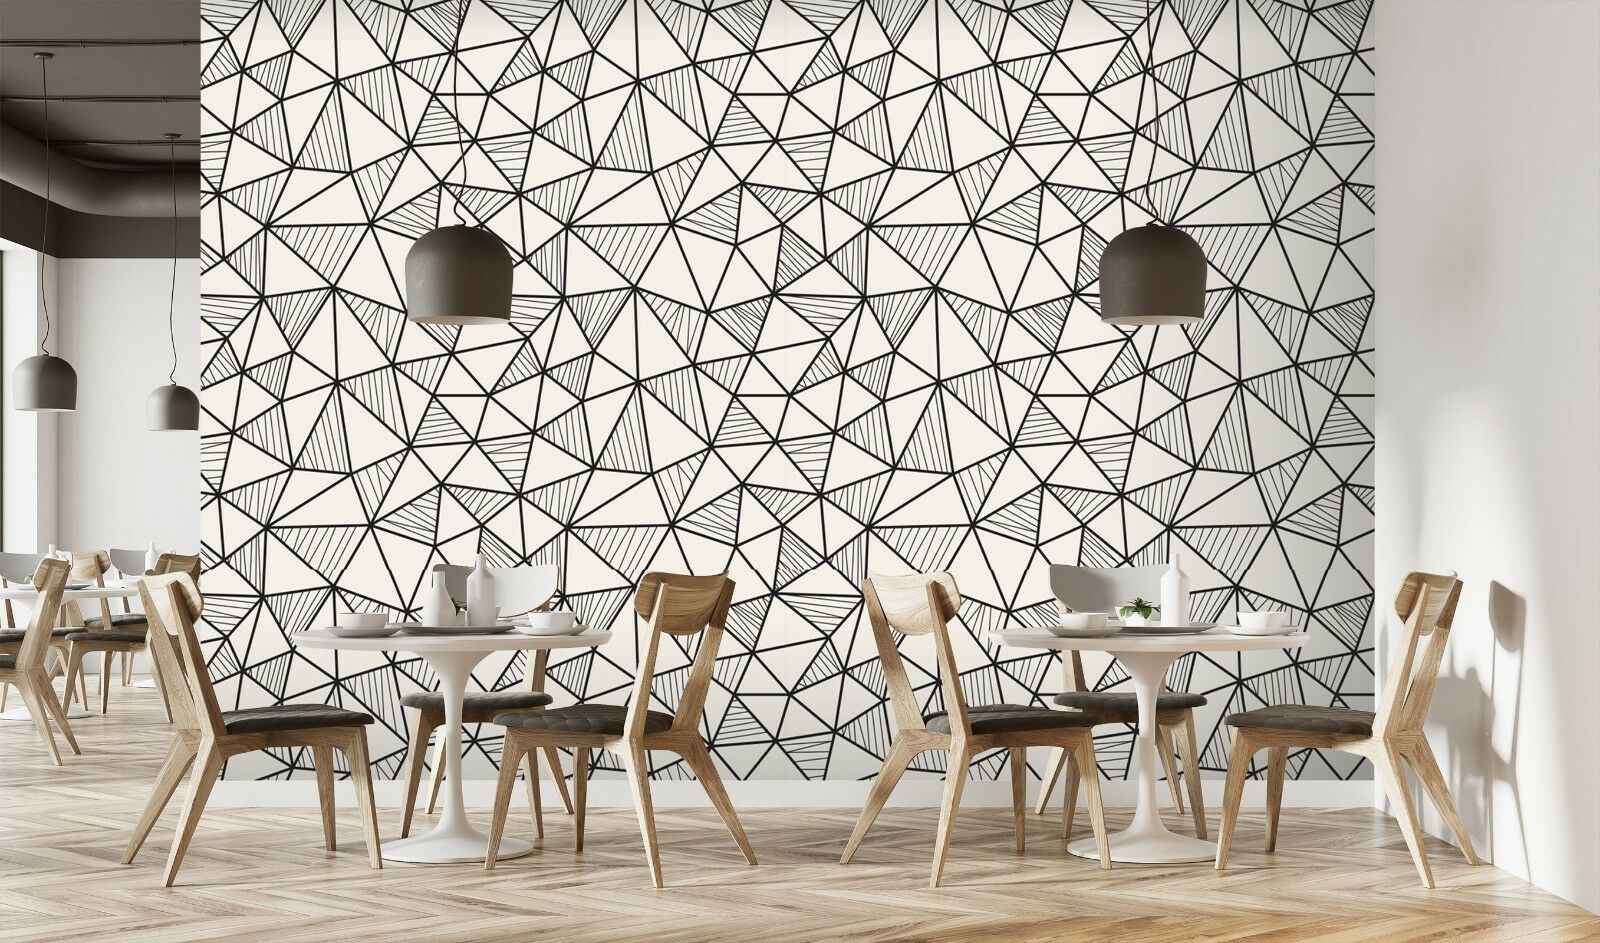 3D Sketch Triangle 8 Texture Tiles Marble Wall Paper Decal Wallpaper Mural AJ AU